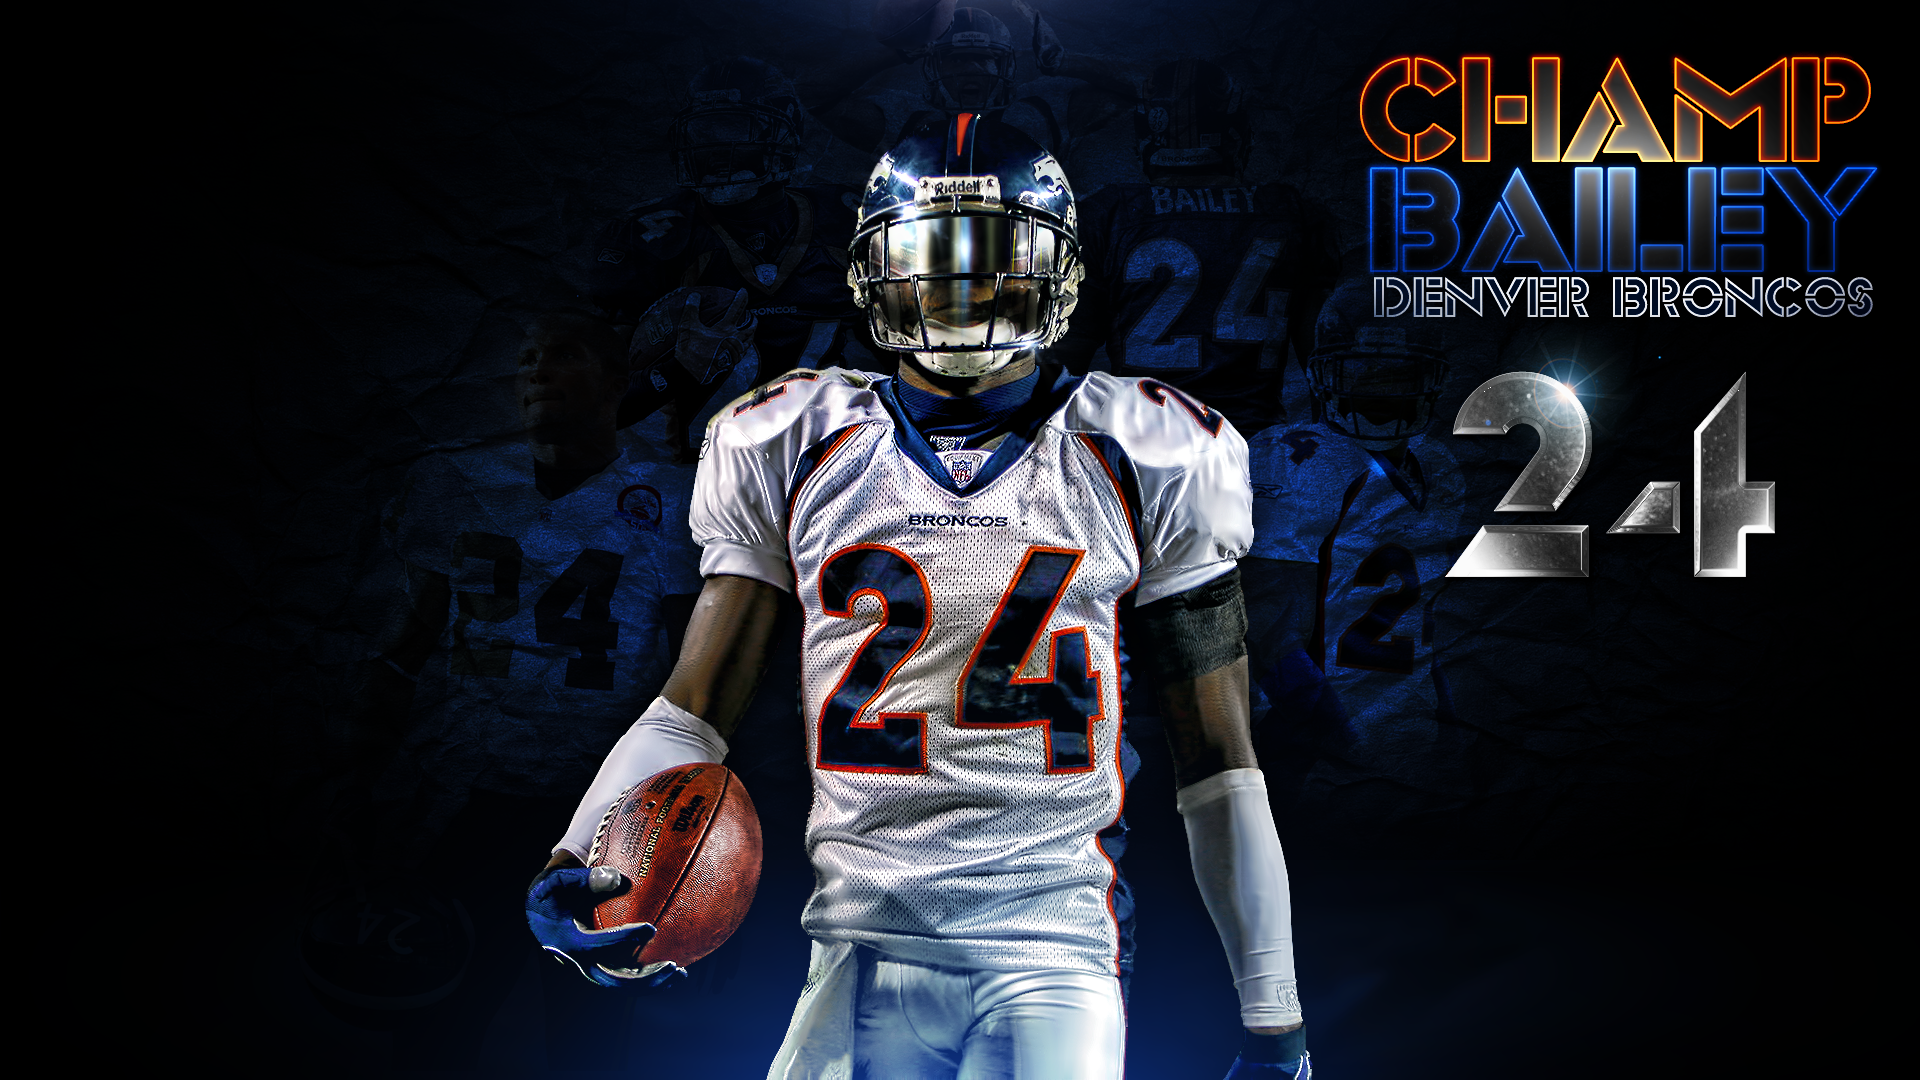 Housh's Wallpaper Gallery - Page 7Demaryius Thomas Wallpaper